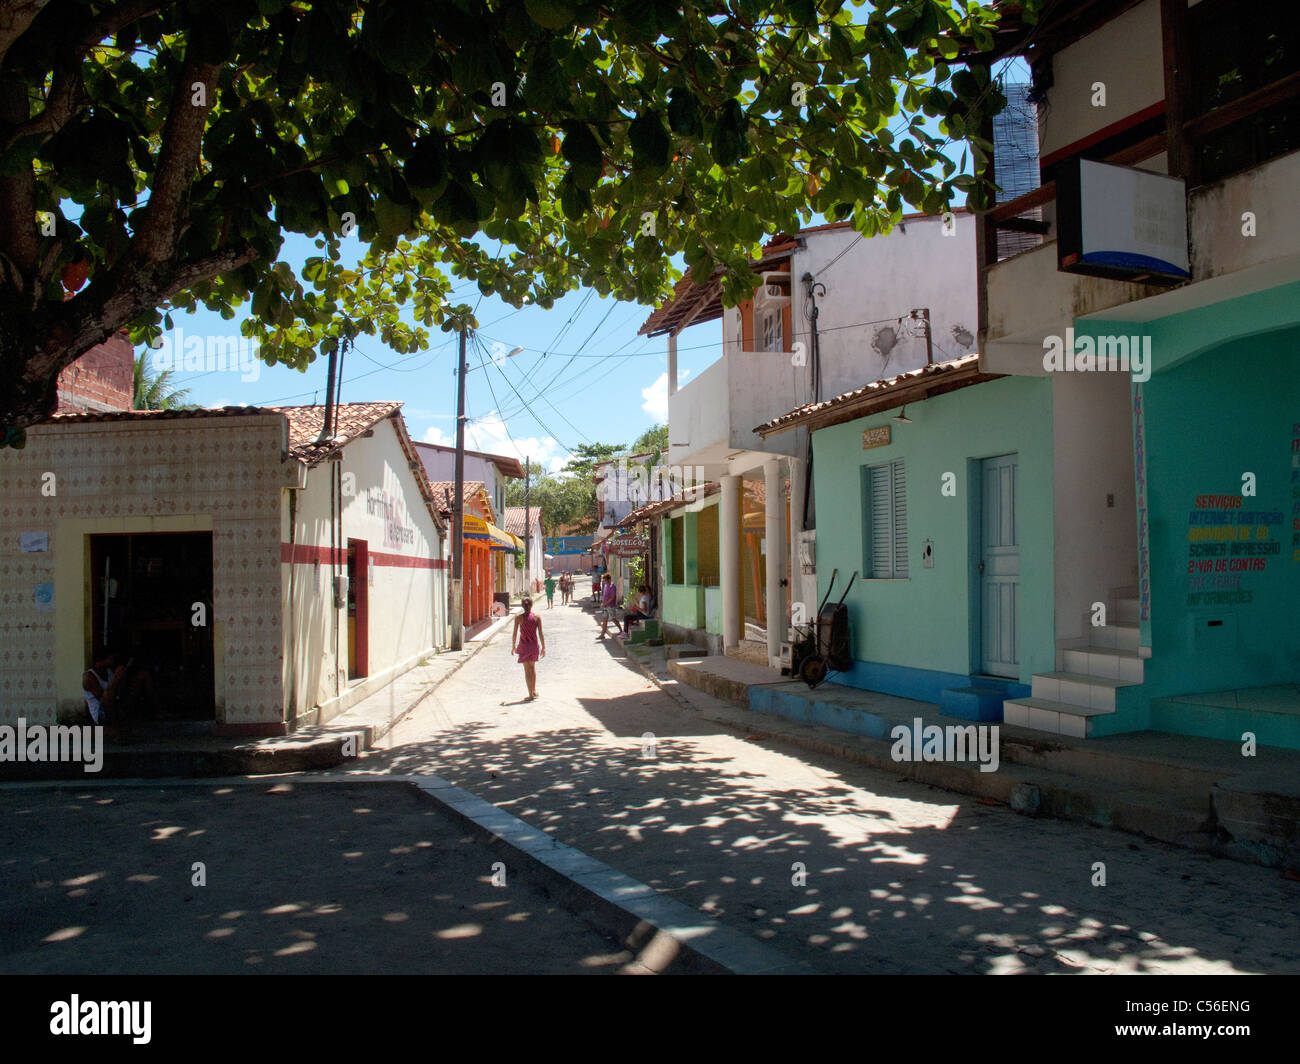 Girl walking down the street in the village of Velha Boipeba on Boipeba Island, Bahia State, Brazil - Stock Image